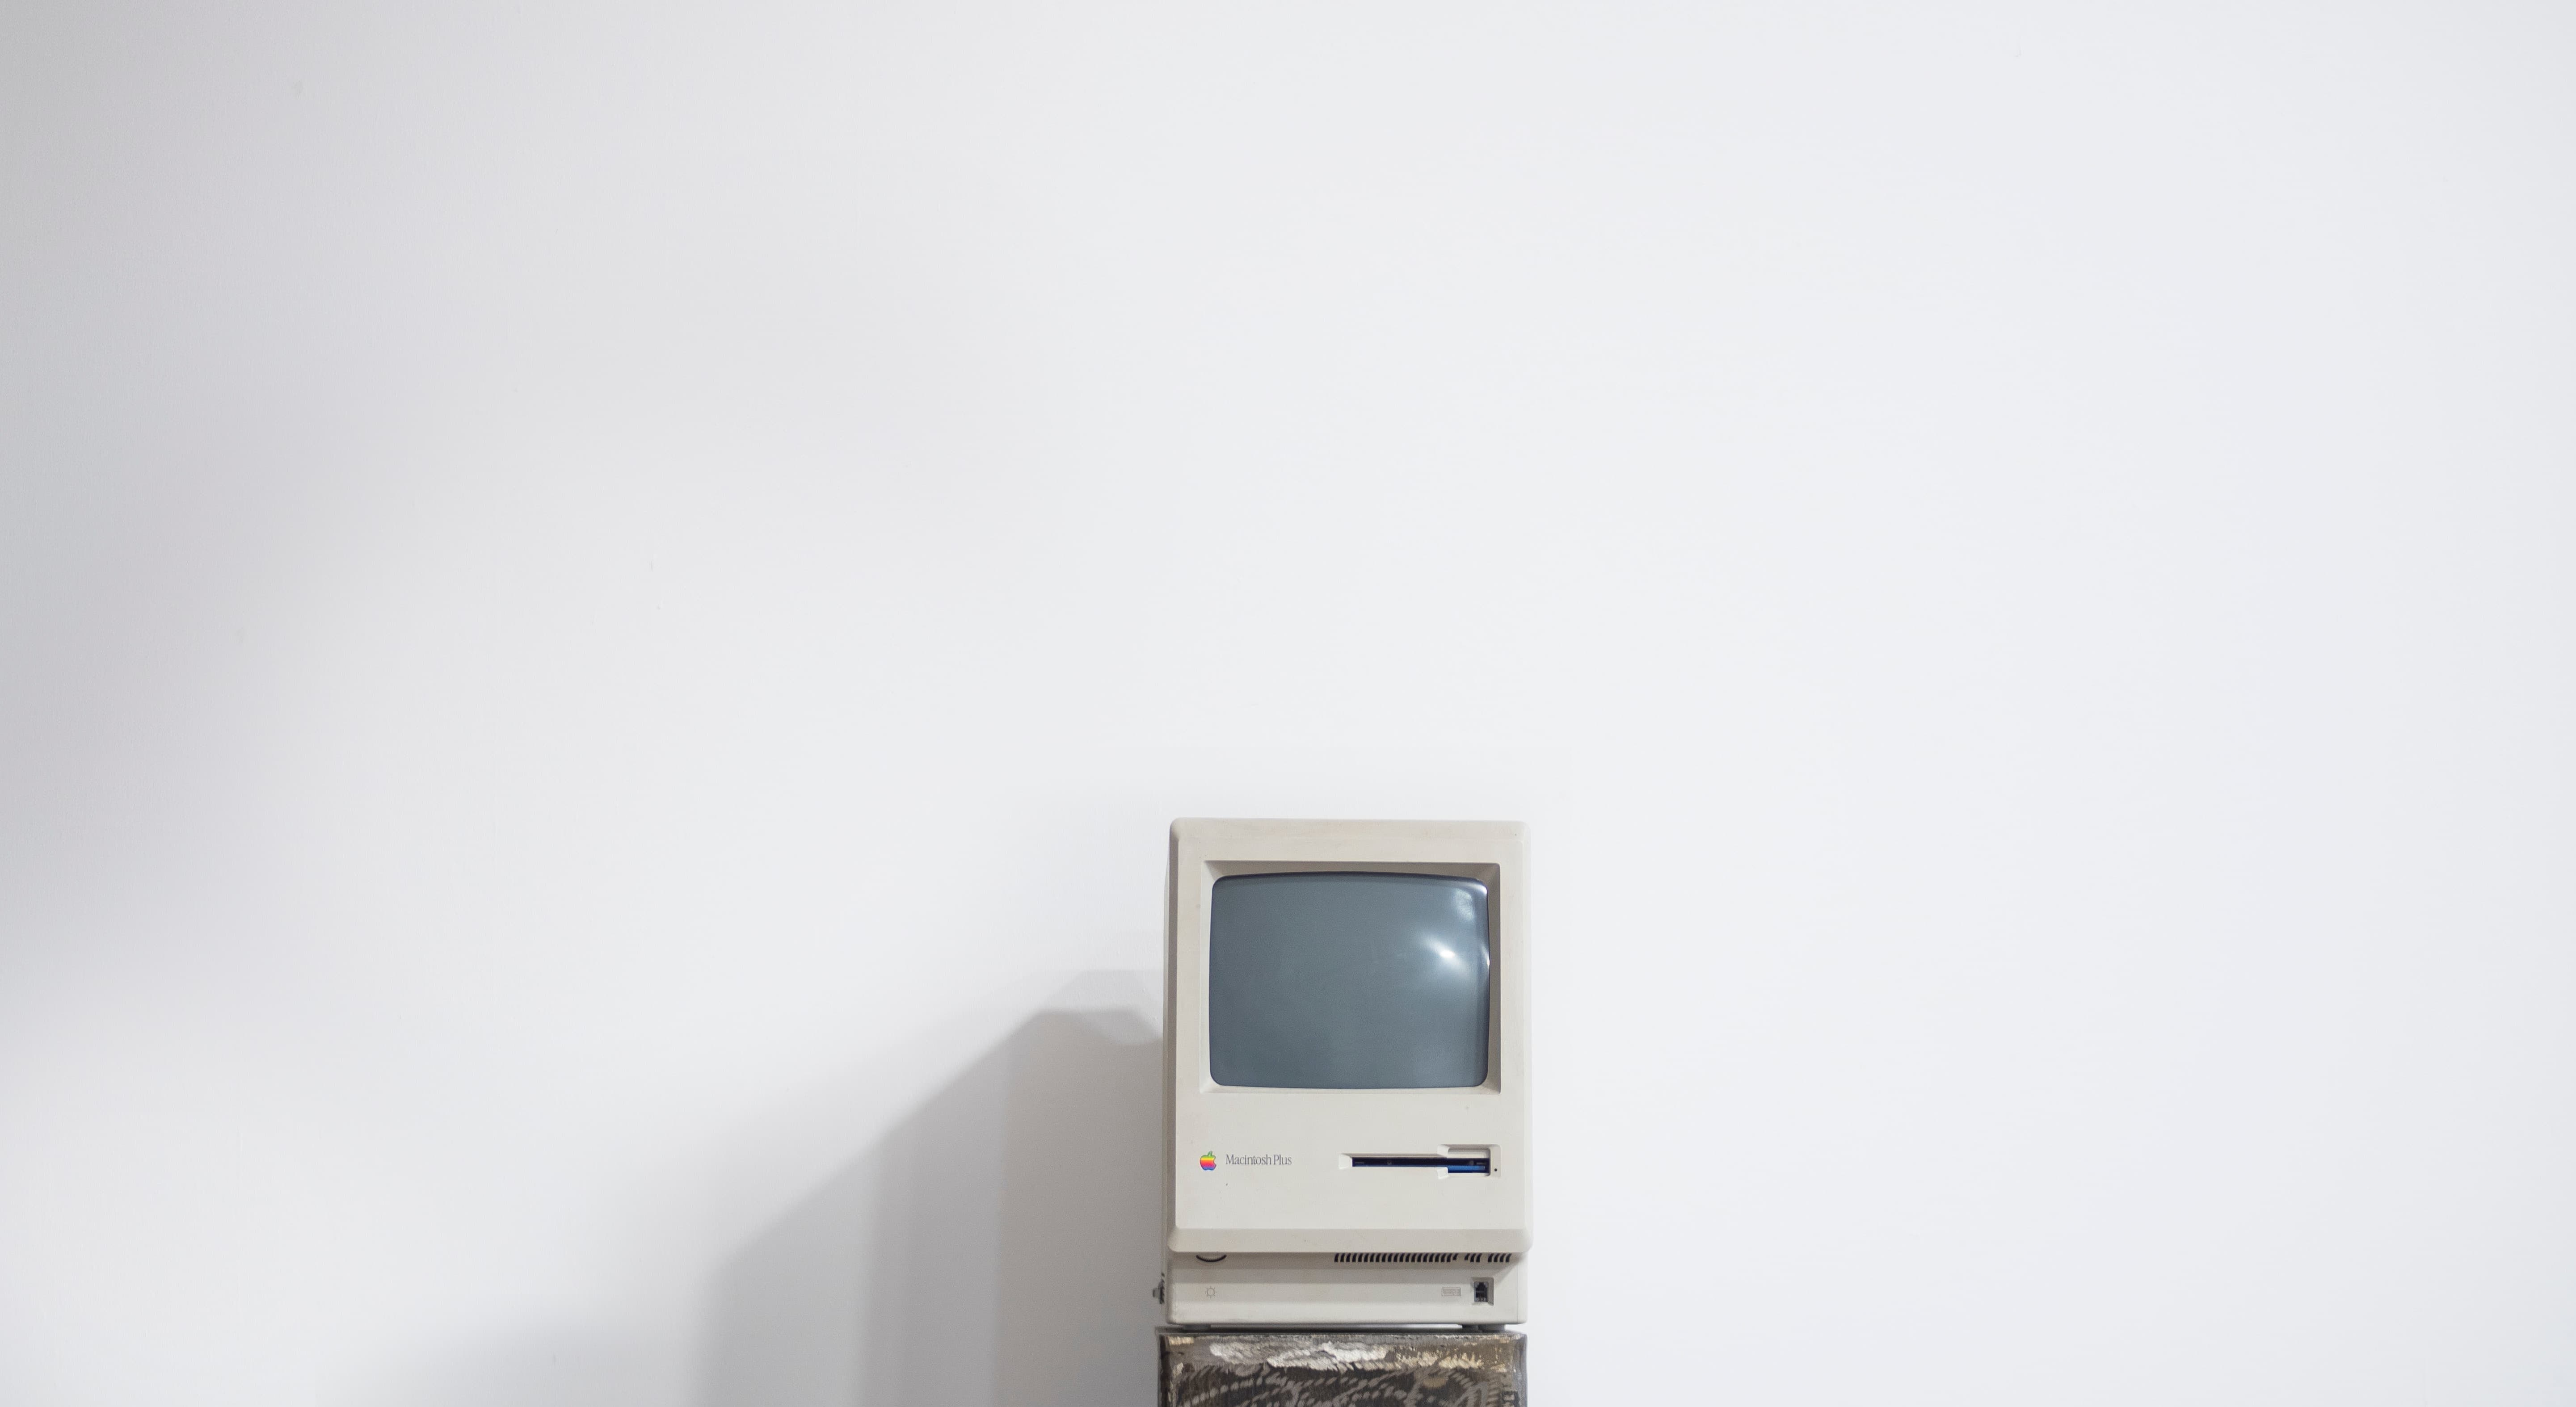 A vintage Mac book pro on a white background